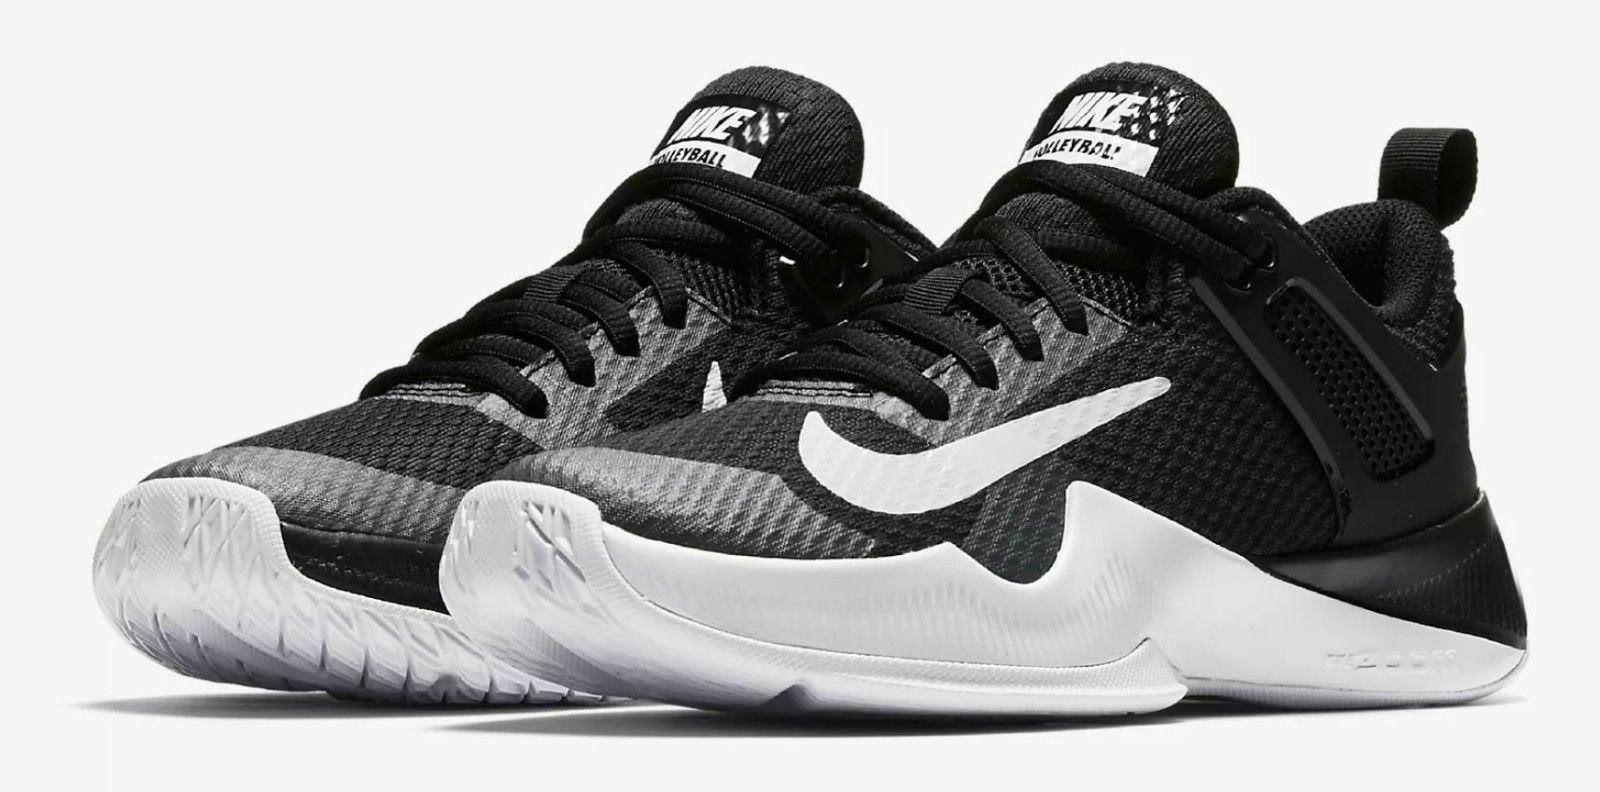 NEW Sz 12 Women's Nike Air Zoom Hyperace Nike Volleyball Black White 902367-001